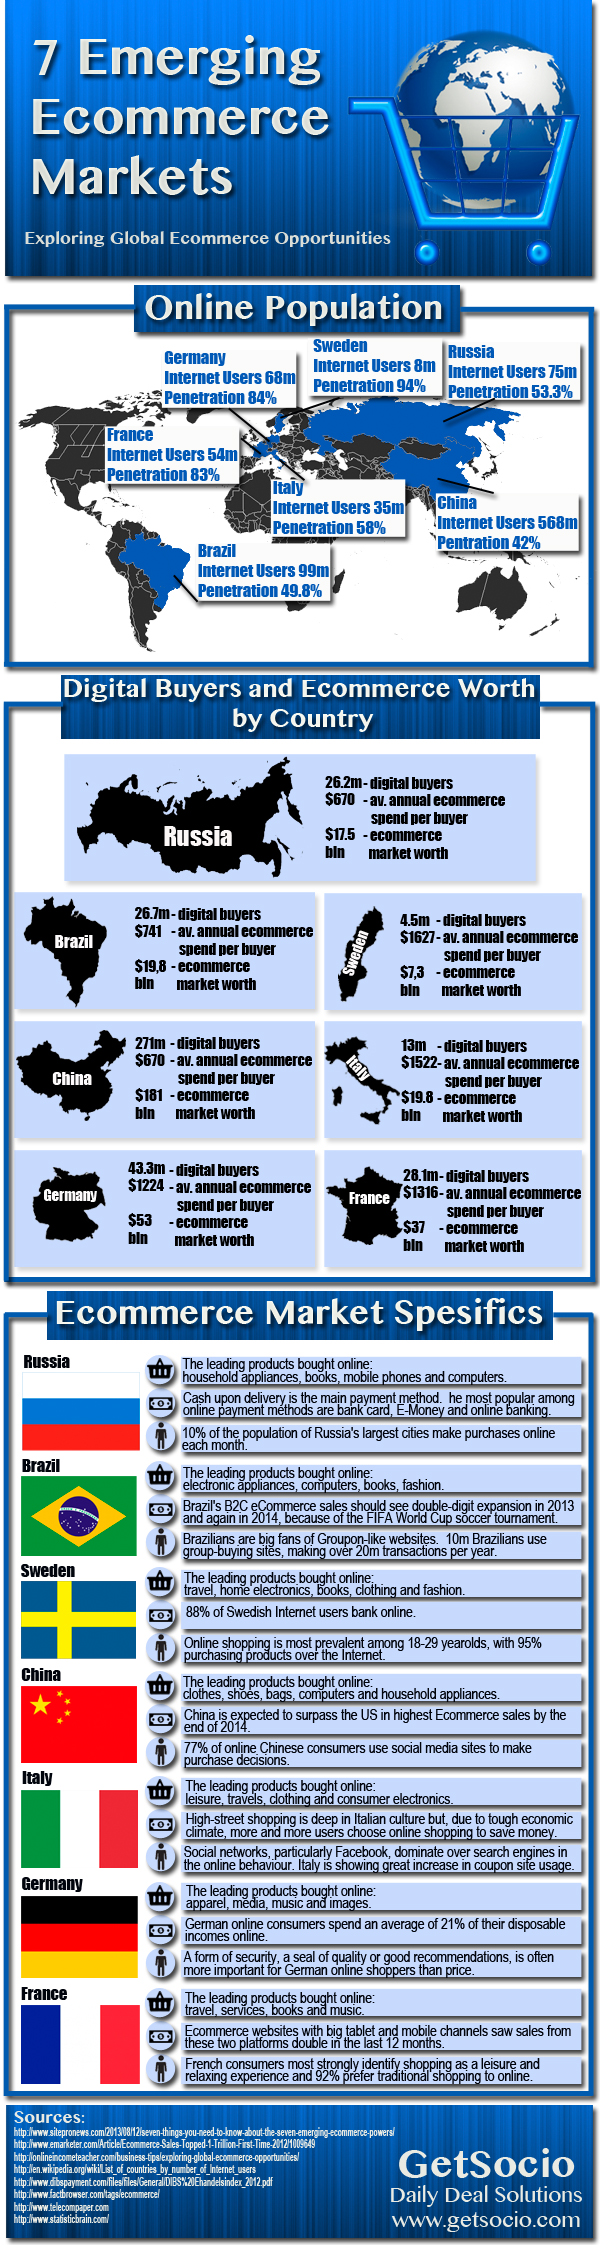 7-emerging-ecommerce-markets_52136ded46536